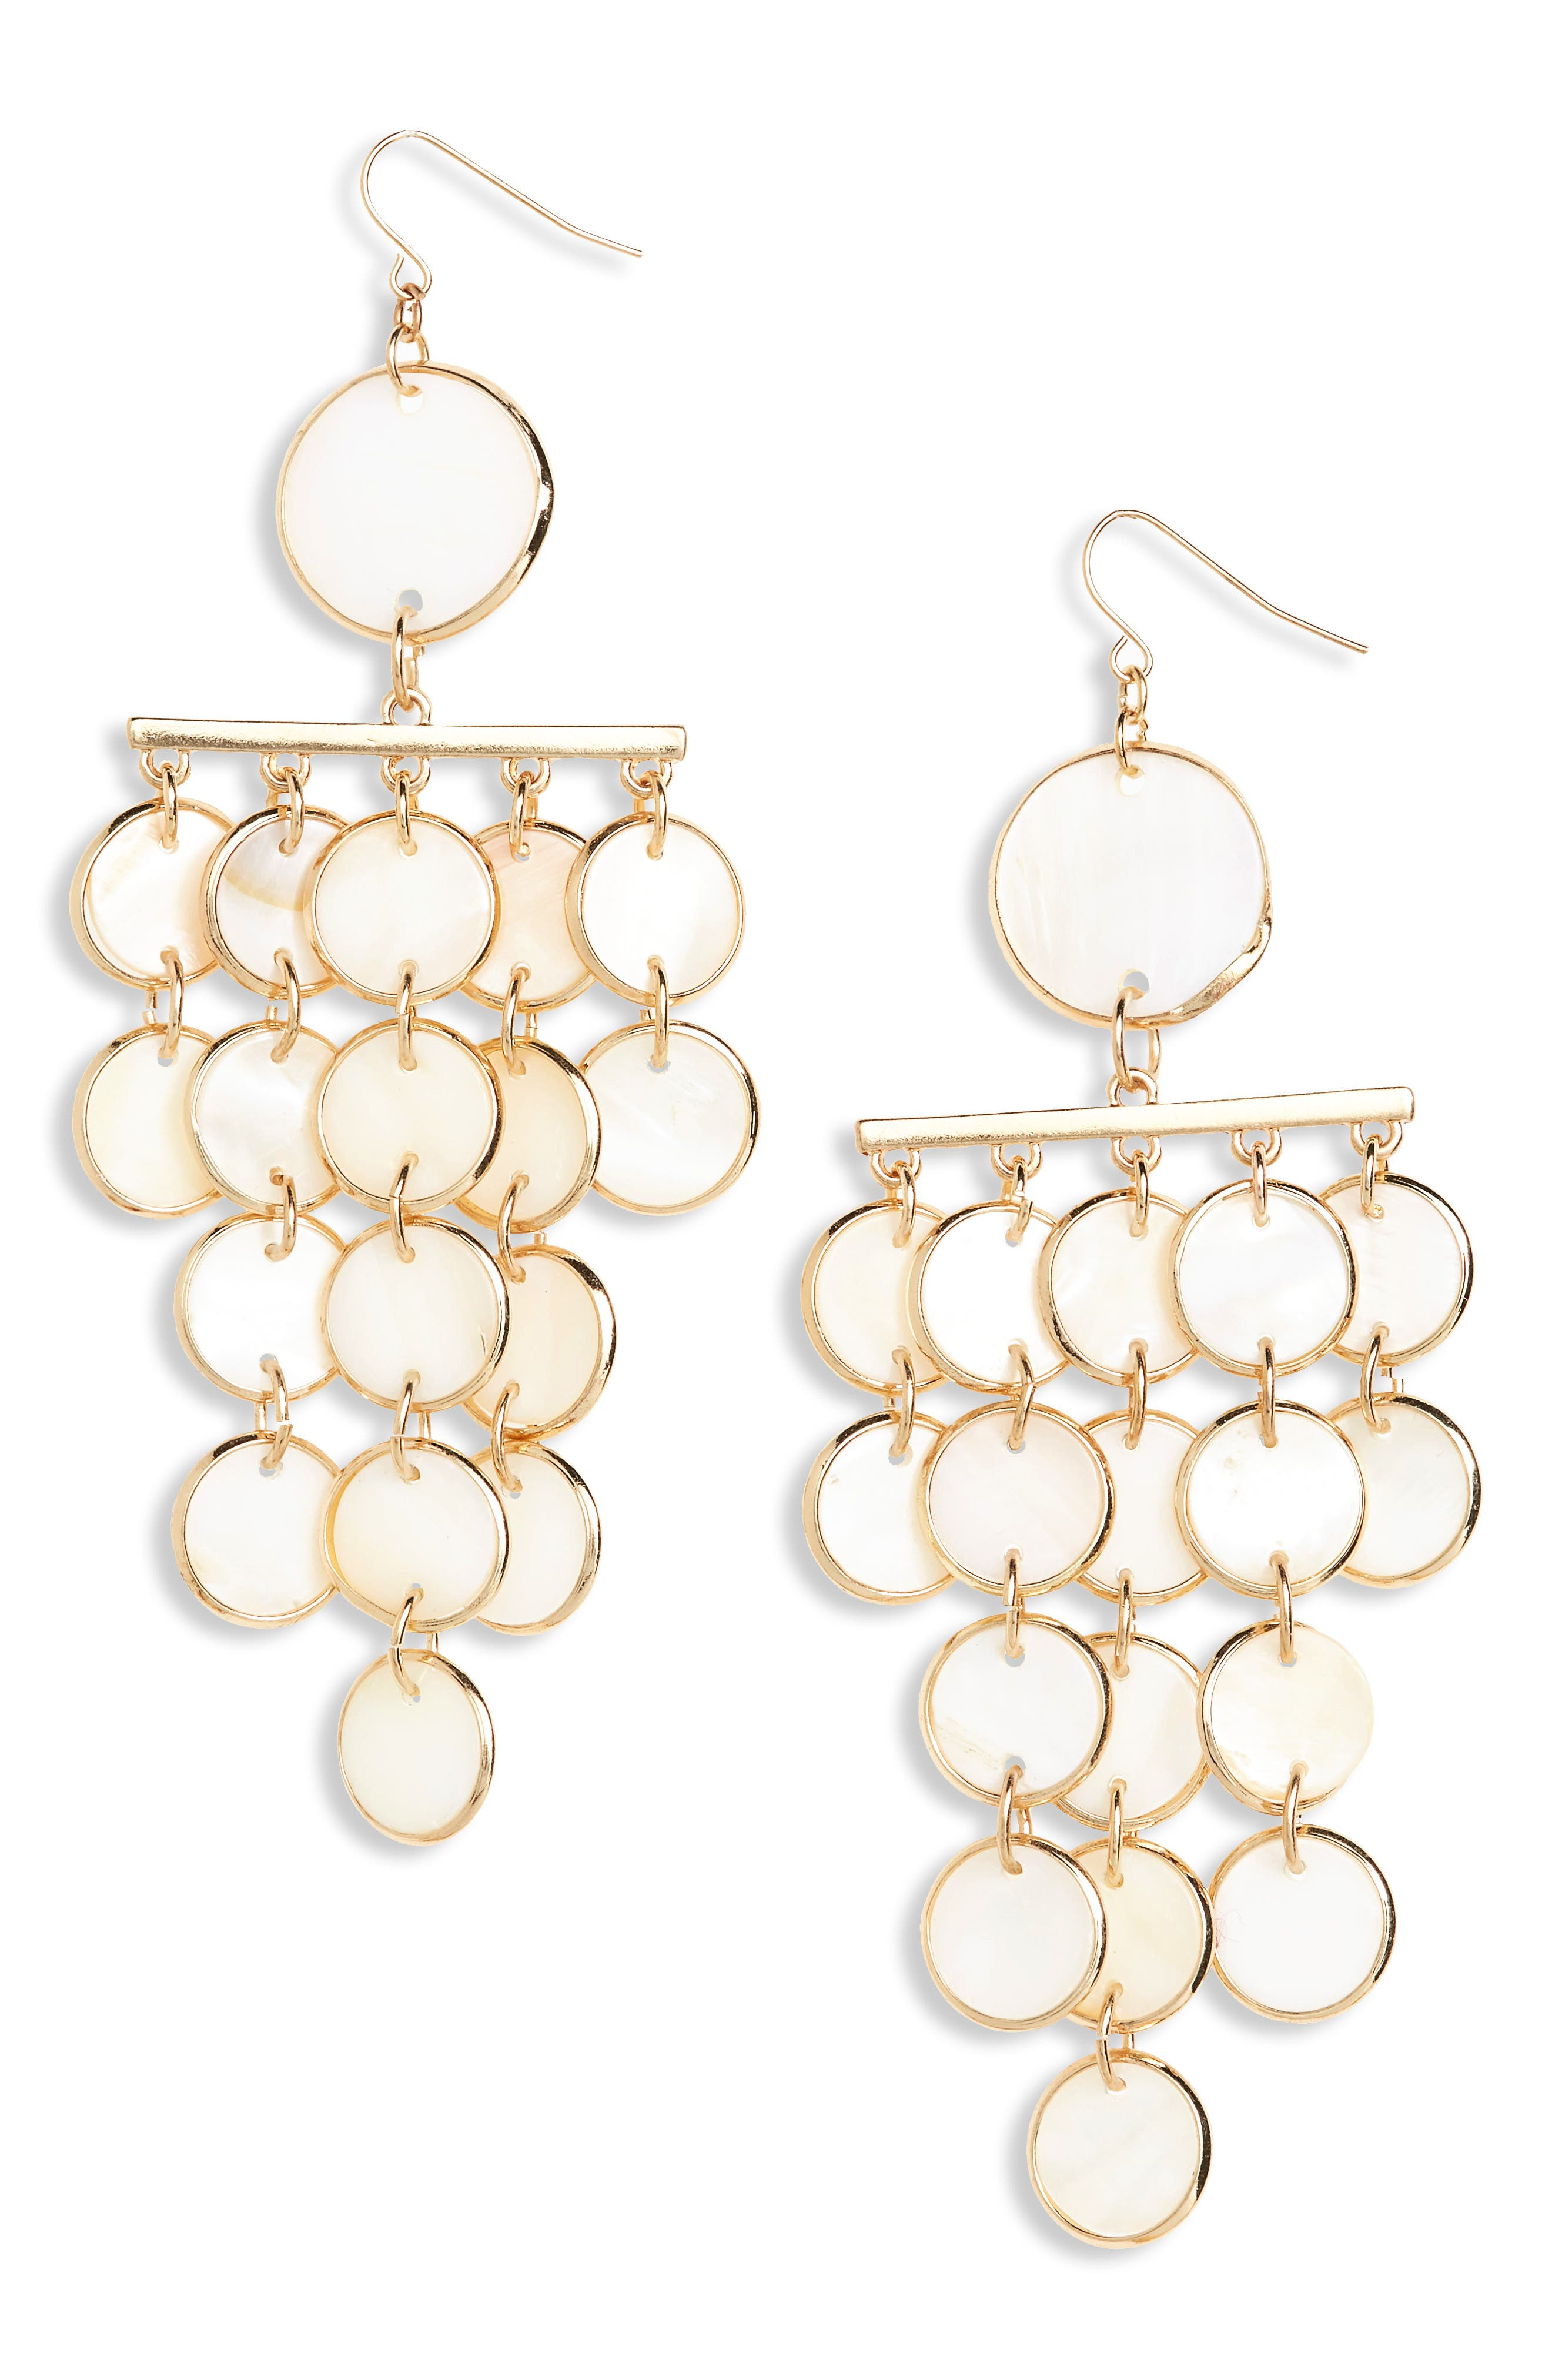 Mother of Pearl Chandelier Earrings,                             Main thumbnail 1, color,                             710